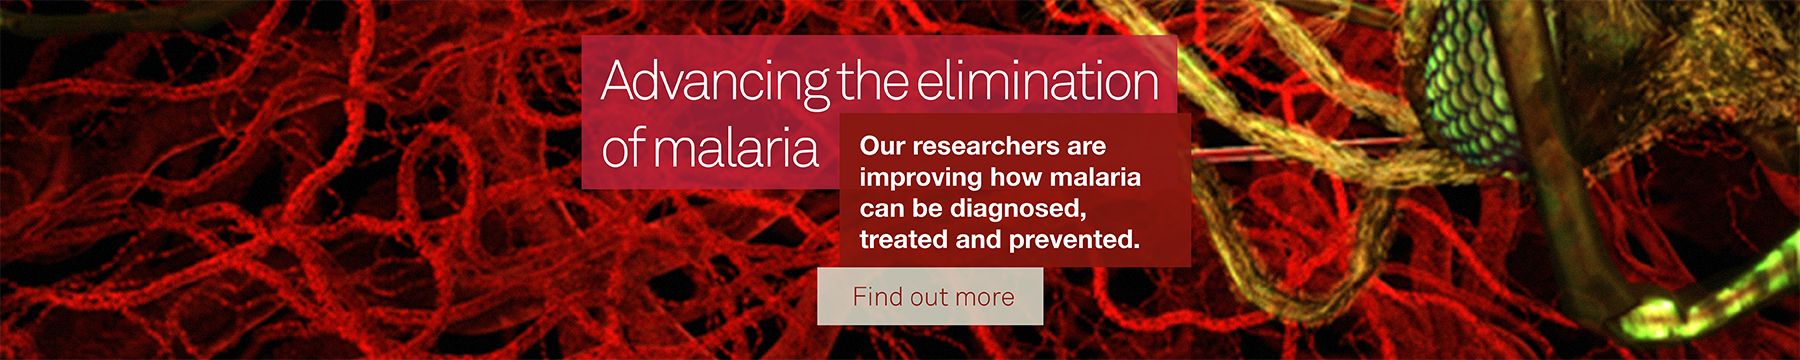 Advancing the elimination of malaria, find out more